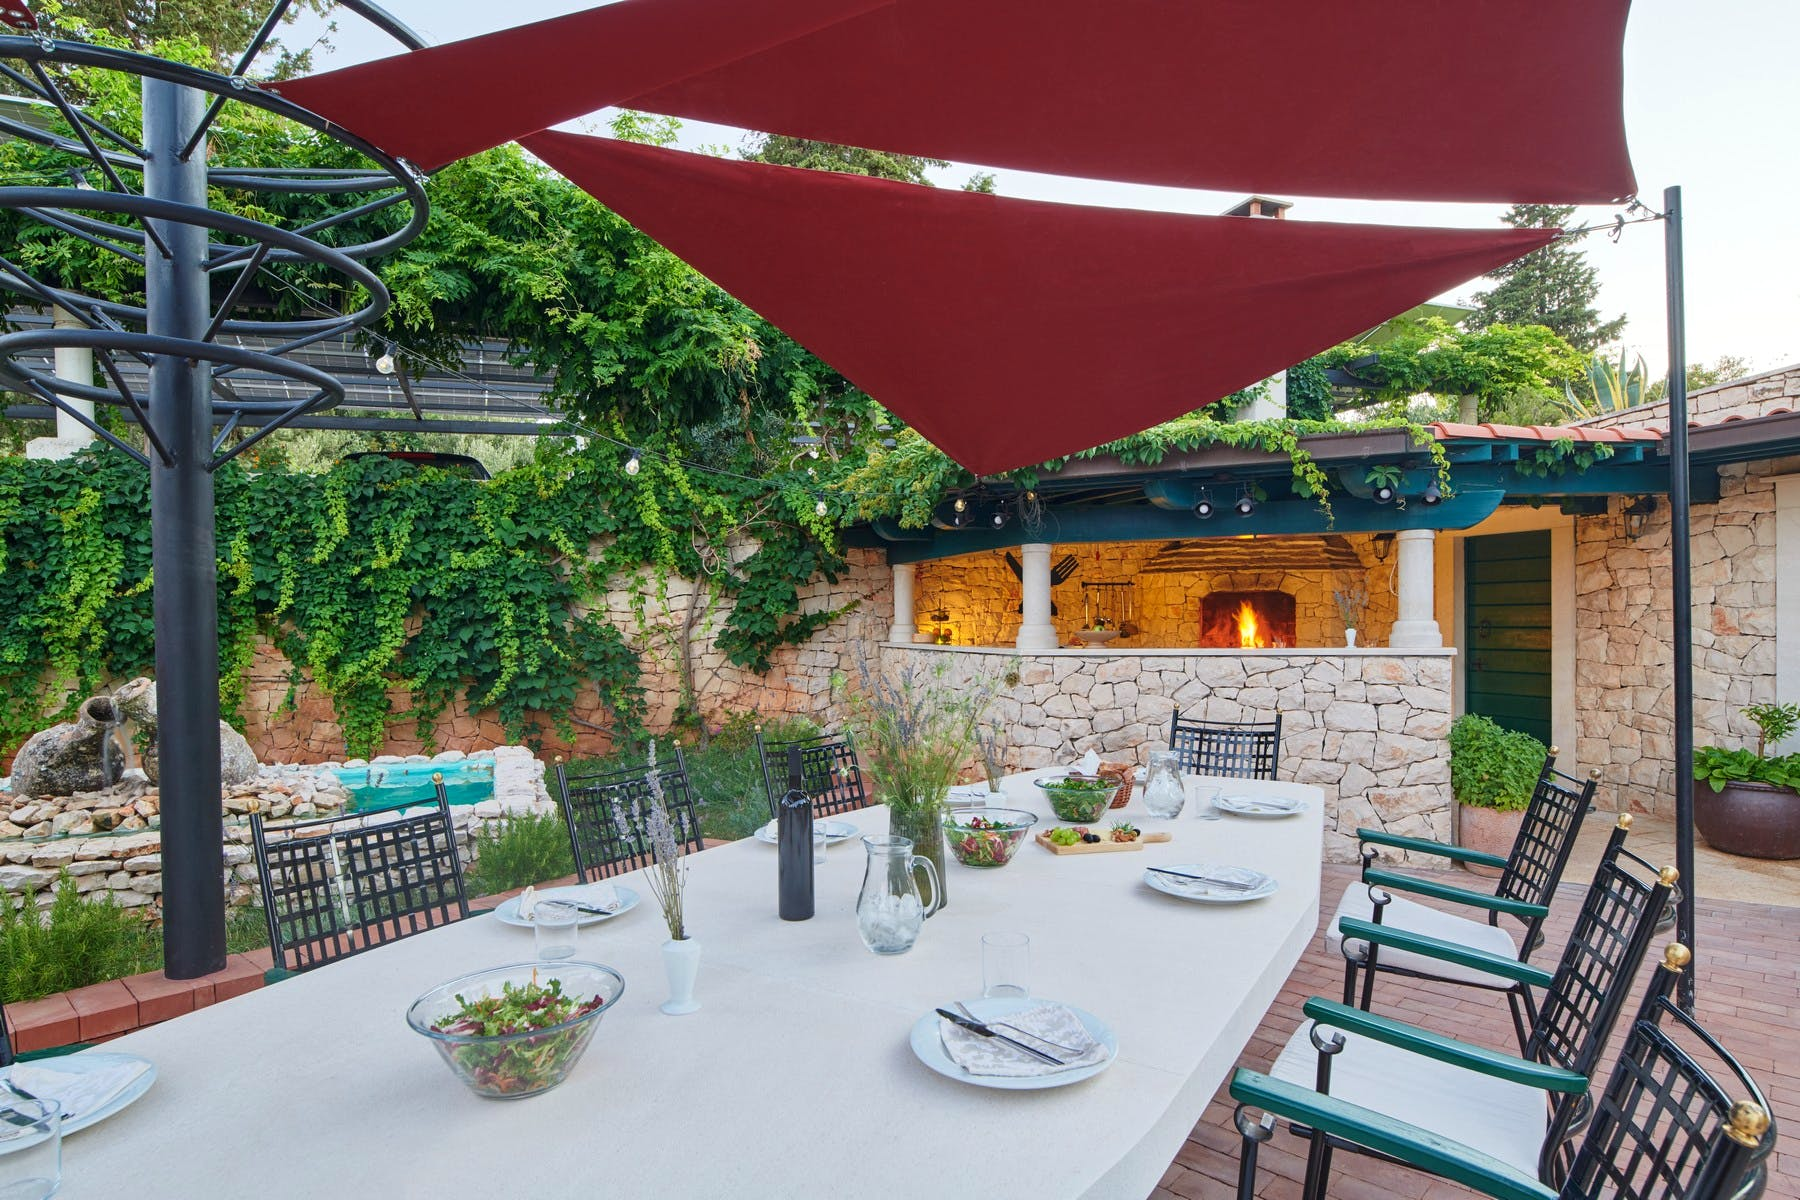 Spacious outdoor dining are with stone fireplace